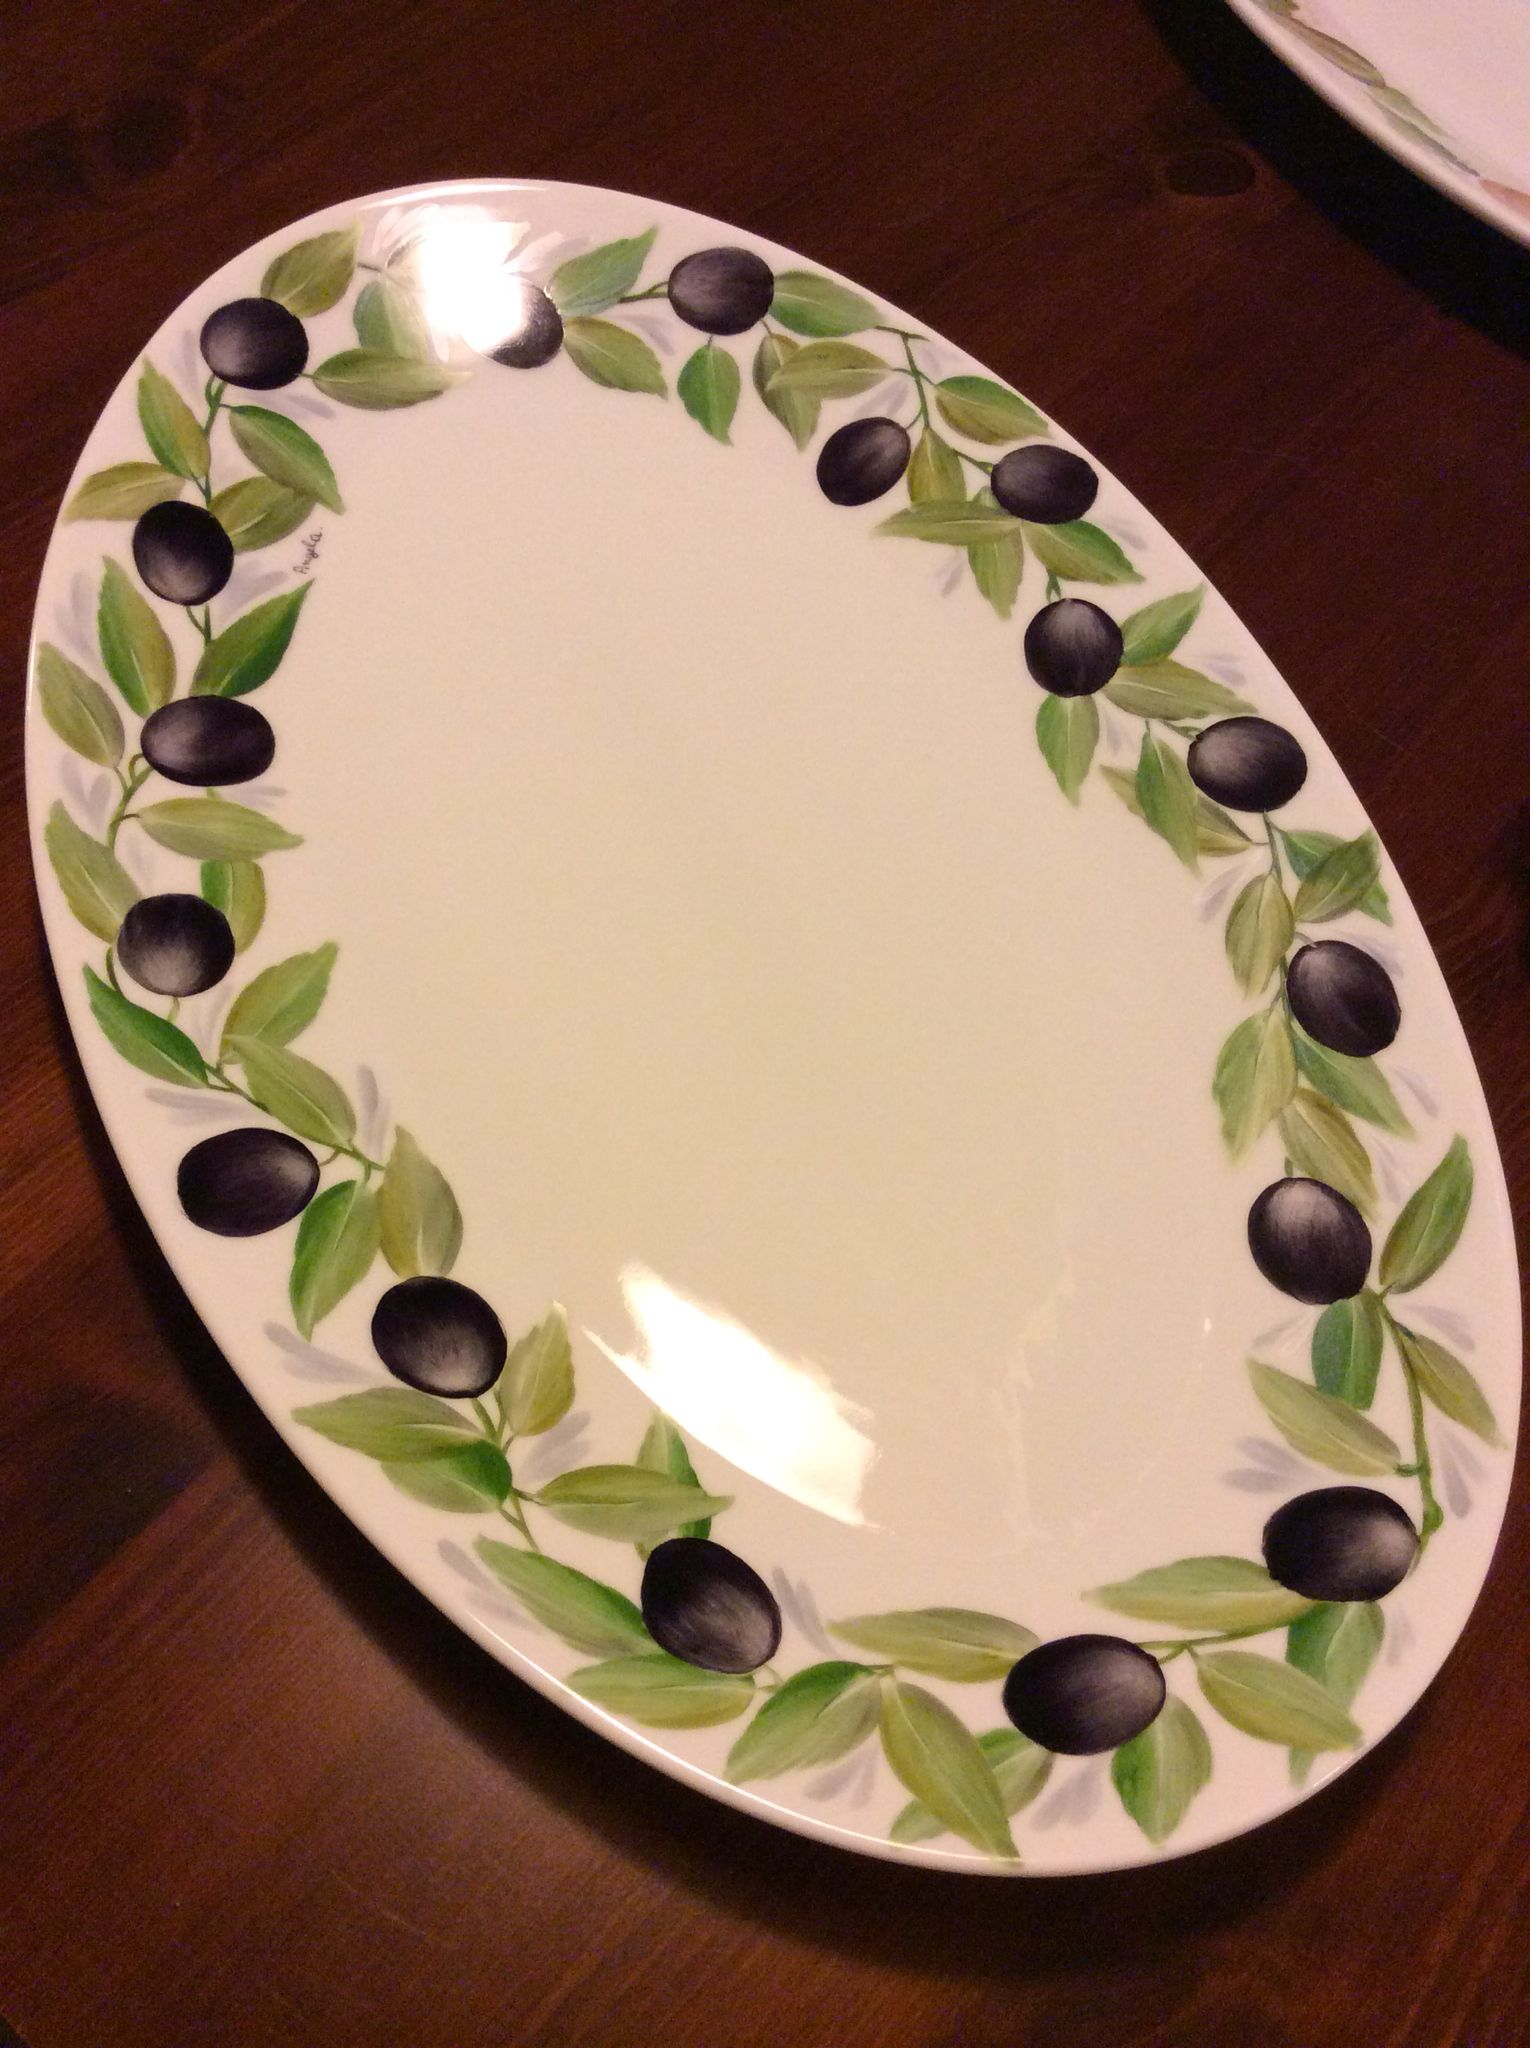 Serving Dish With Olives By Angela Davies Tabak Comlek Meyve